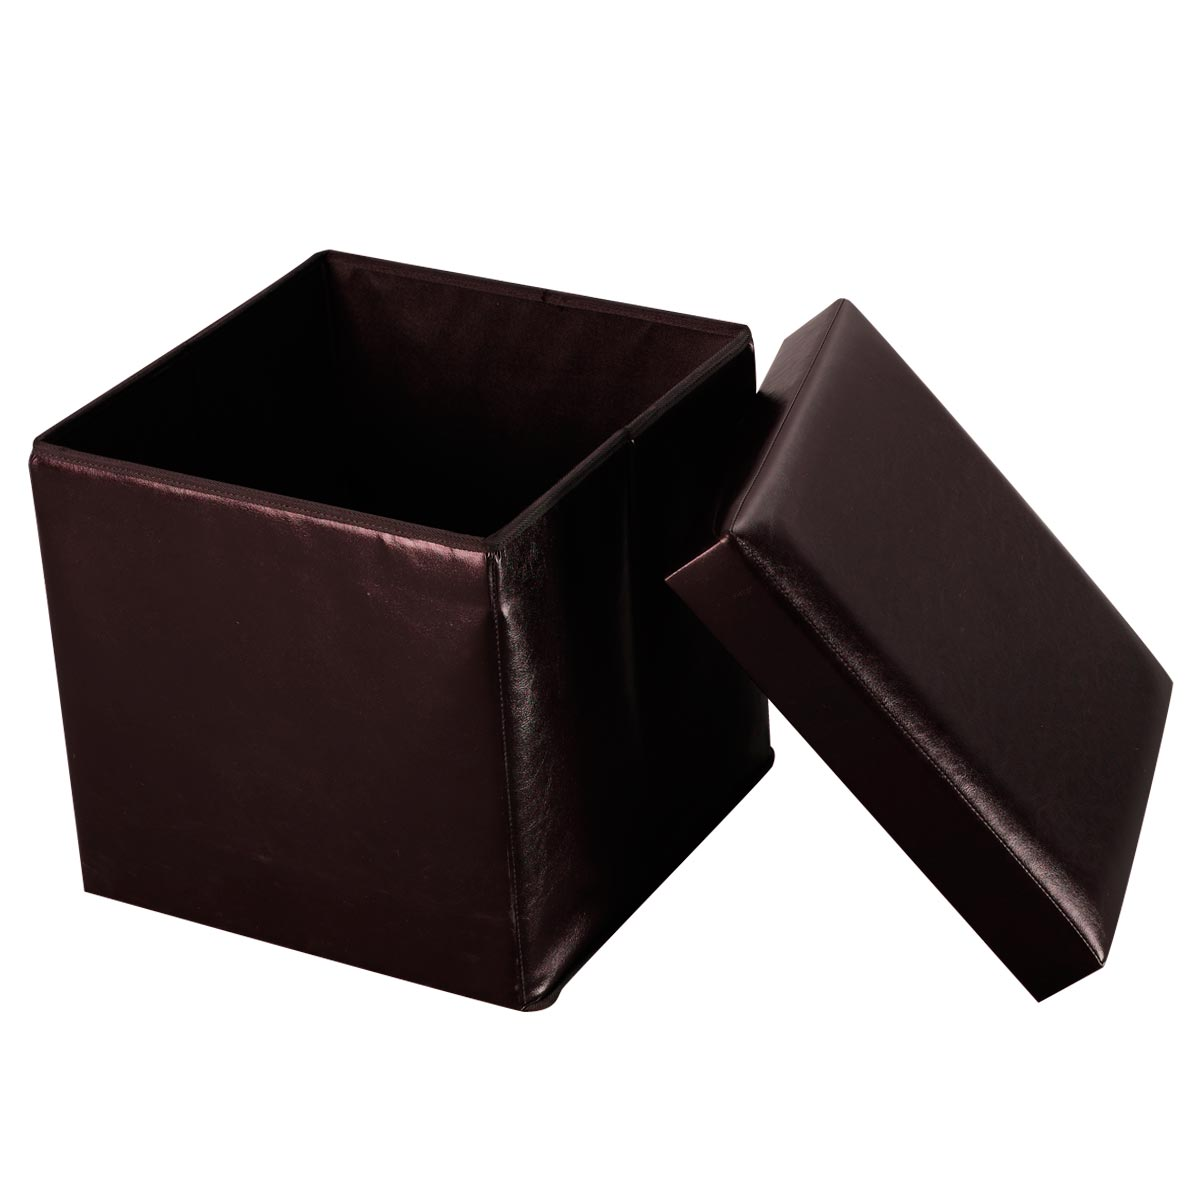 Costway Folding Faux Leather Ottoman Pouffe Storage Box Lounge Seat Footstools (Brown) by Costway